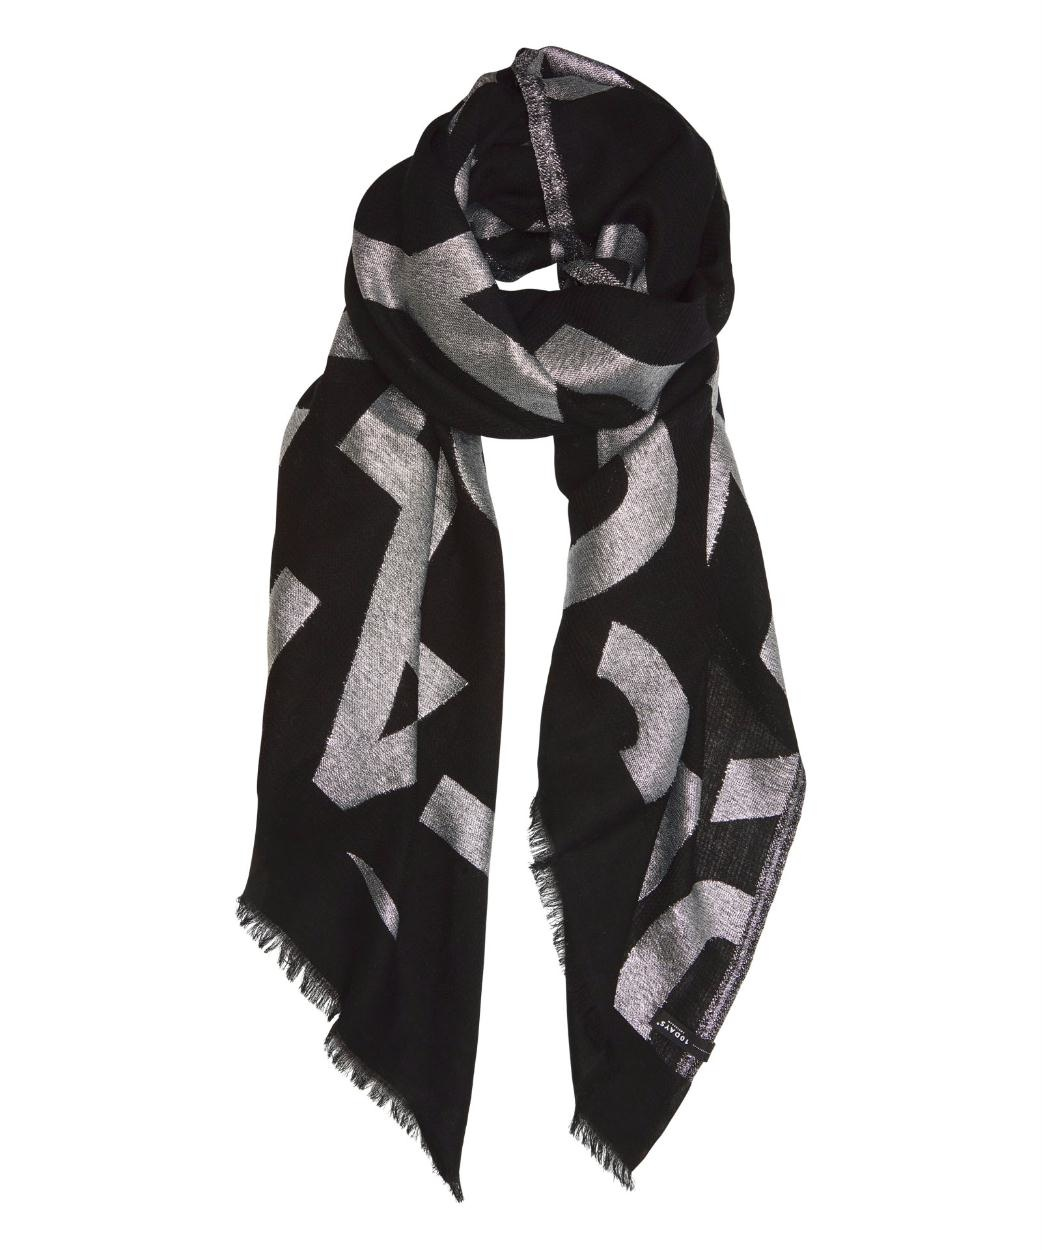 10Days Scarf Lurex Big Logo 20.905.9103/8